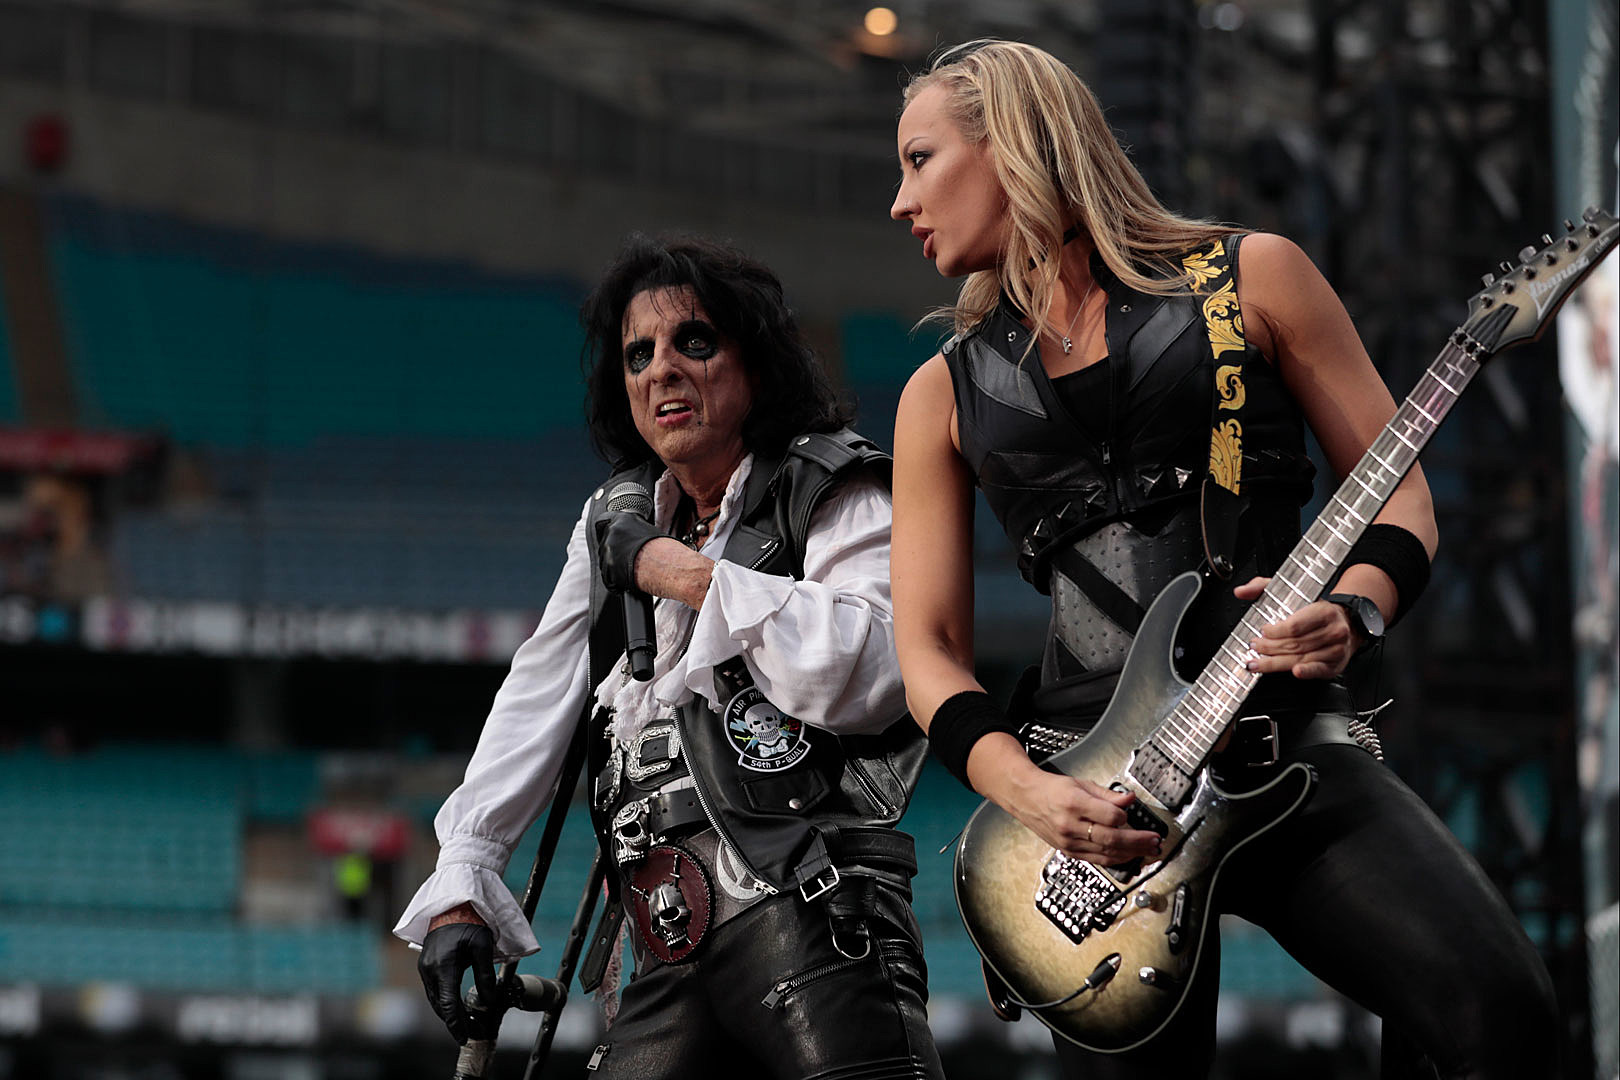 Alice Cooper Breaks Cane Onstage, Accidentally Hits Nita Strauss